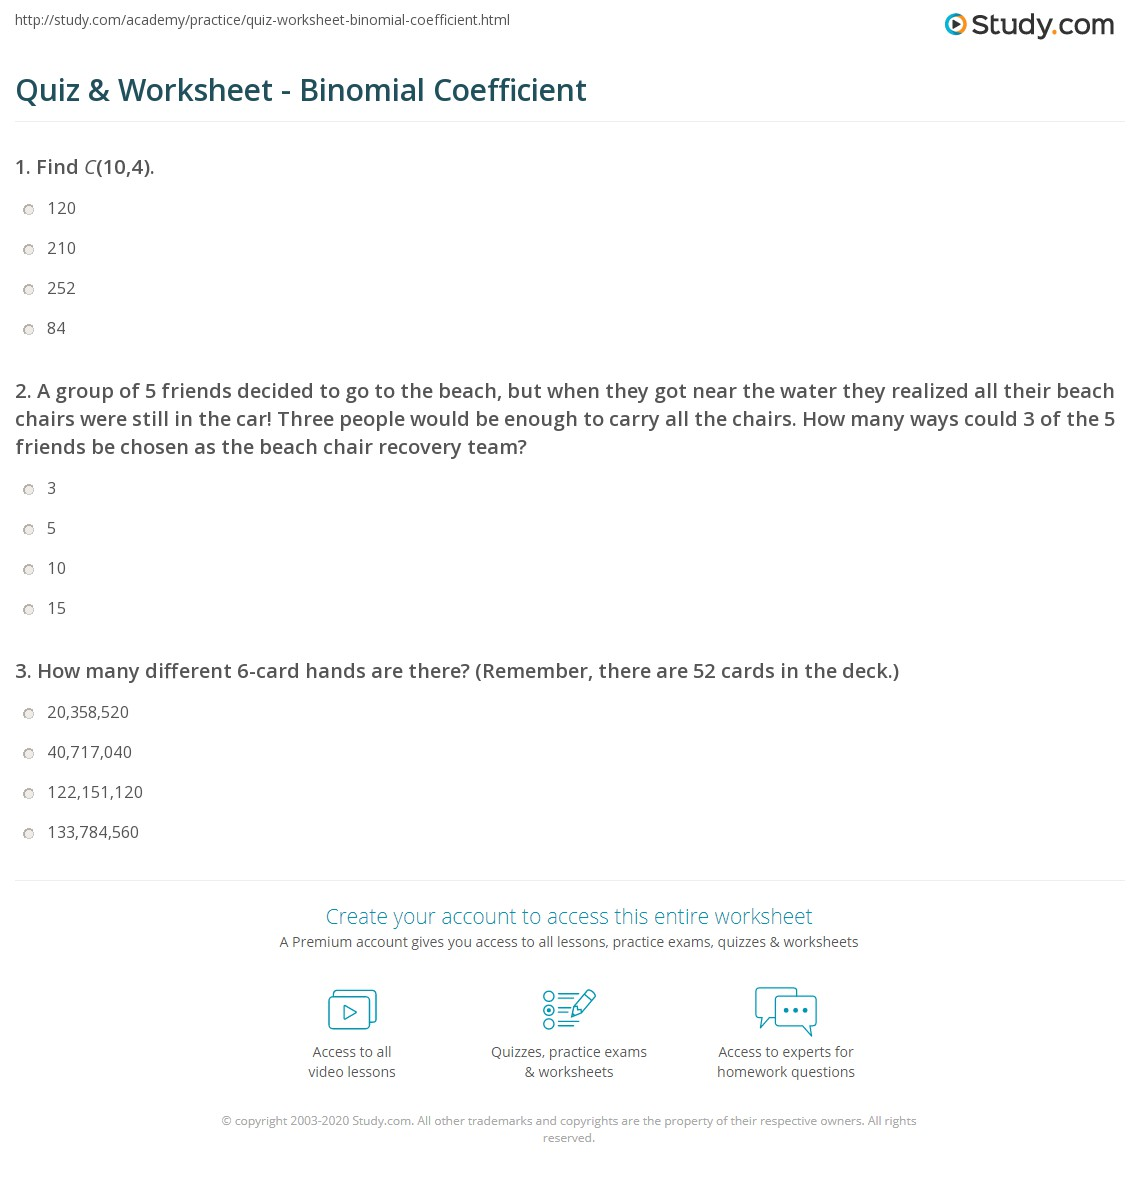 Uncategorized Binomial Distribution Worksheet quiz worksheet binomial coefficient study com 1 a group of 5 friends decided to go the beach but when they got near water realized all their chairs were still in car